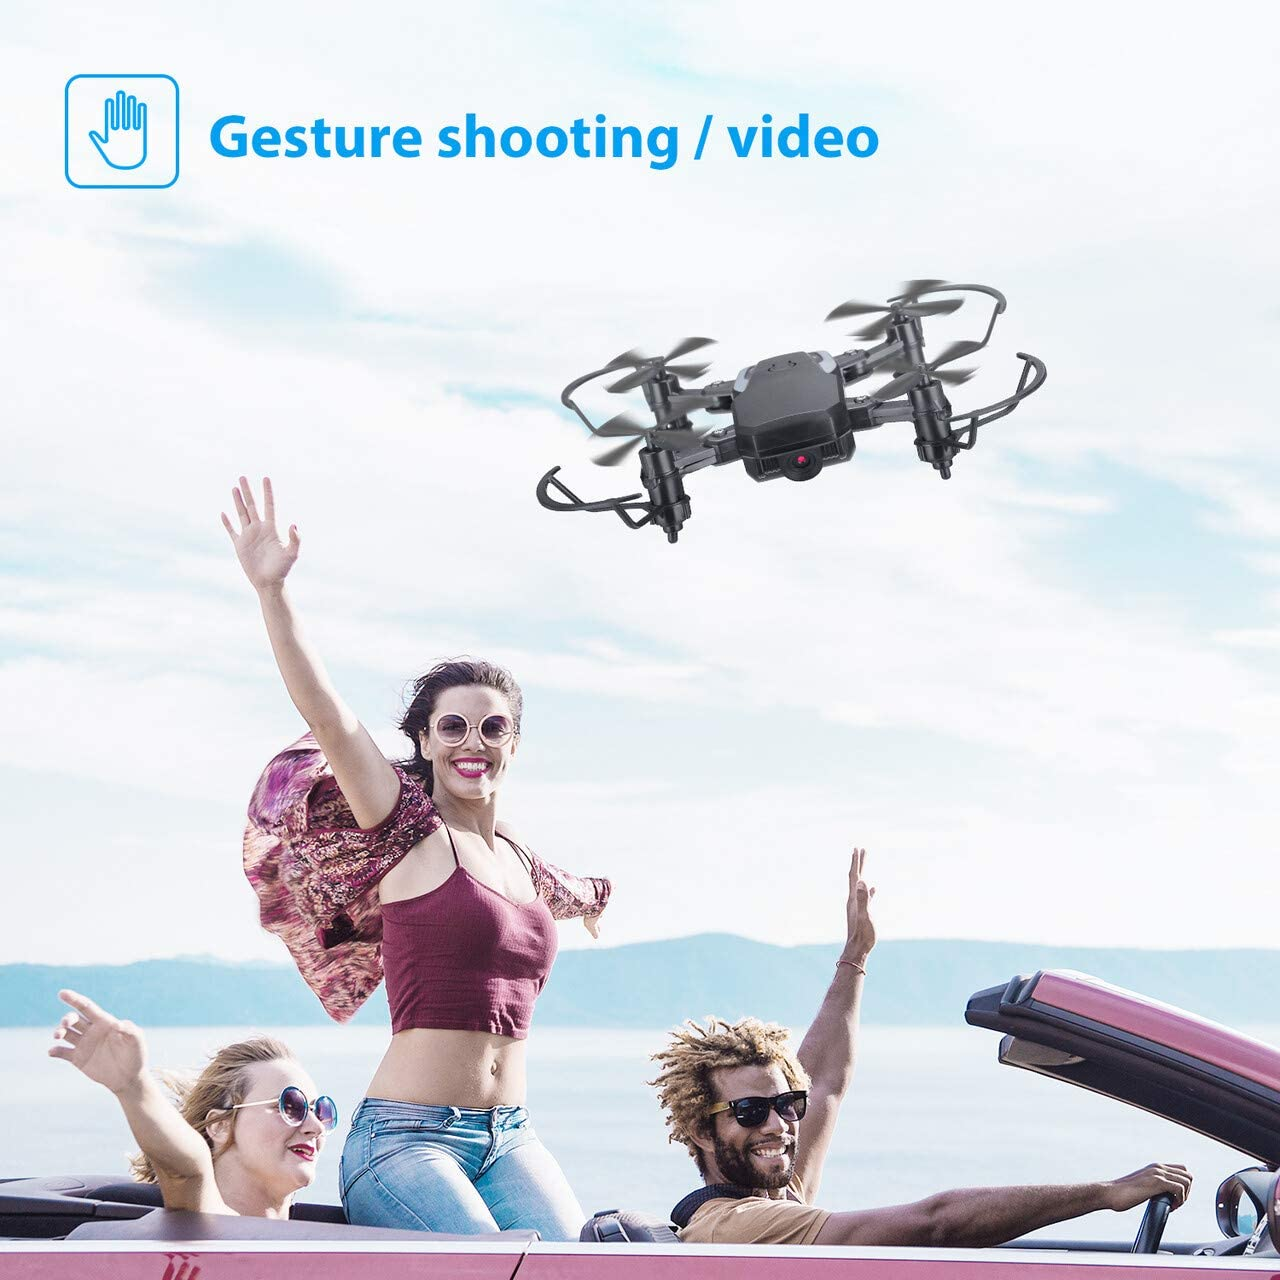 Powerextra 4DRC Mini Drone with 720P FPV Camera for Kids and Beginners Foldable Drone with WiFi Live Video RC Quadcopter Altitude Hold App Control 3 Modular Batteries 3D Flips and One Key Return